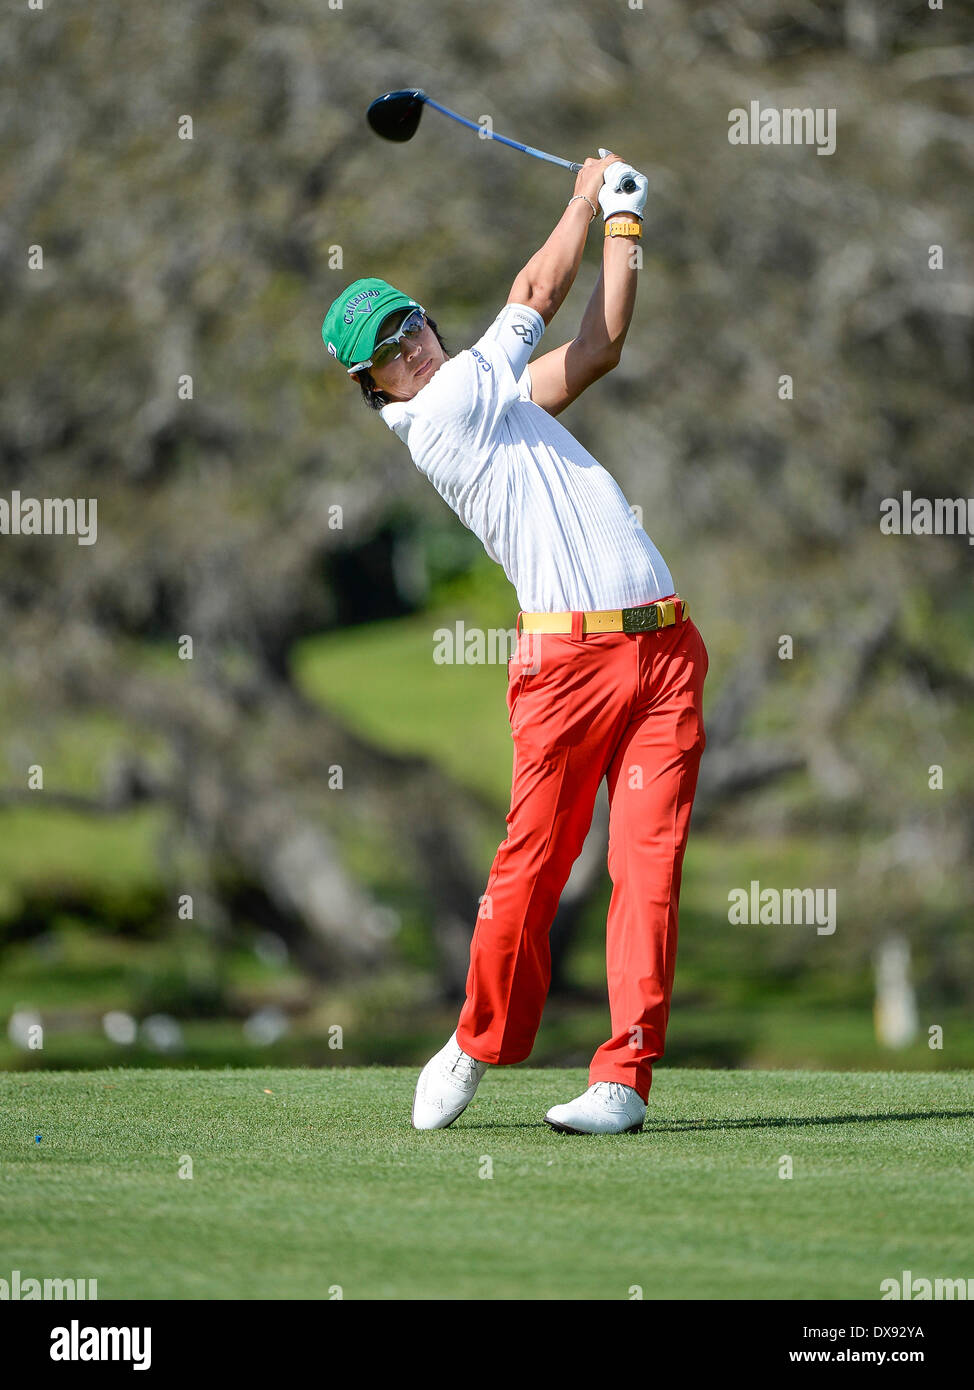 20th Mar, 2014. Rio Ishikawa on #16 tee during first round golf action of the Arnold Palmer Invitational presented by Mastercard held at Arnold Palmer's Bay ...